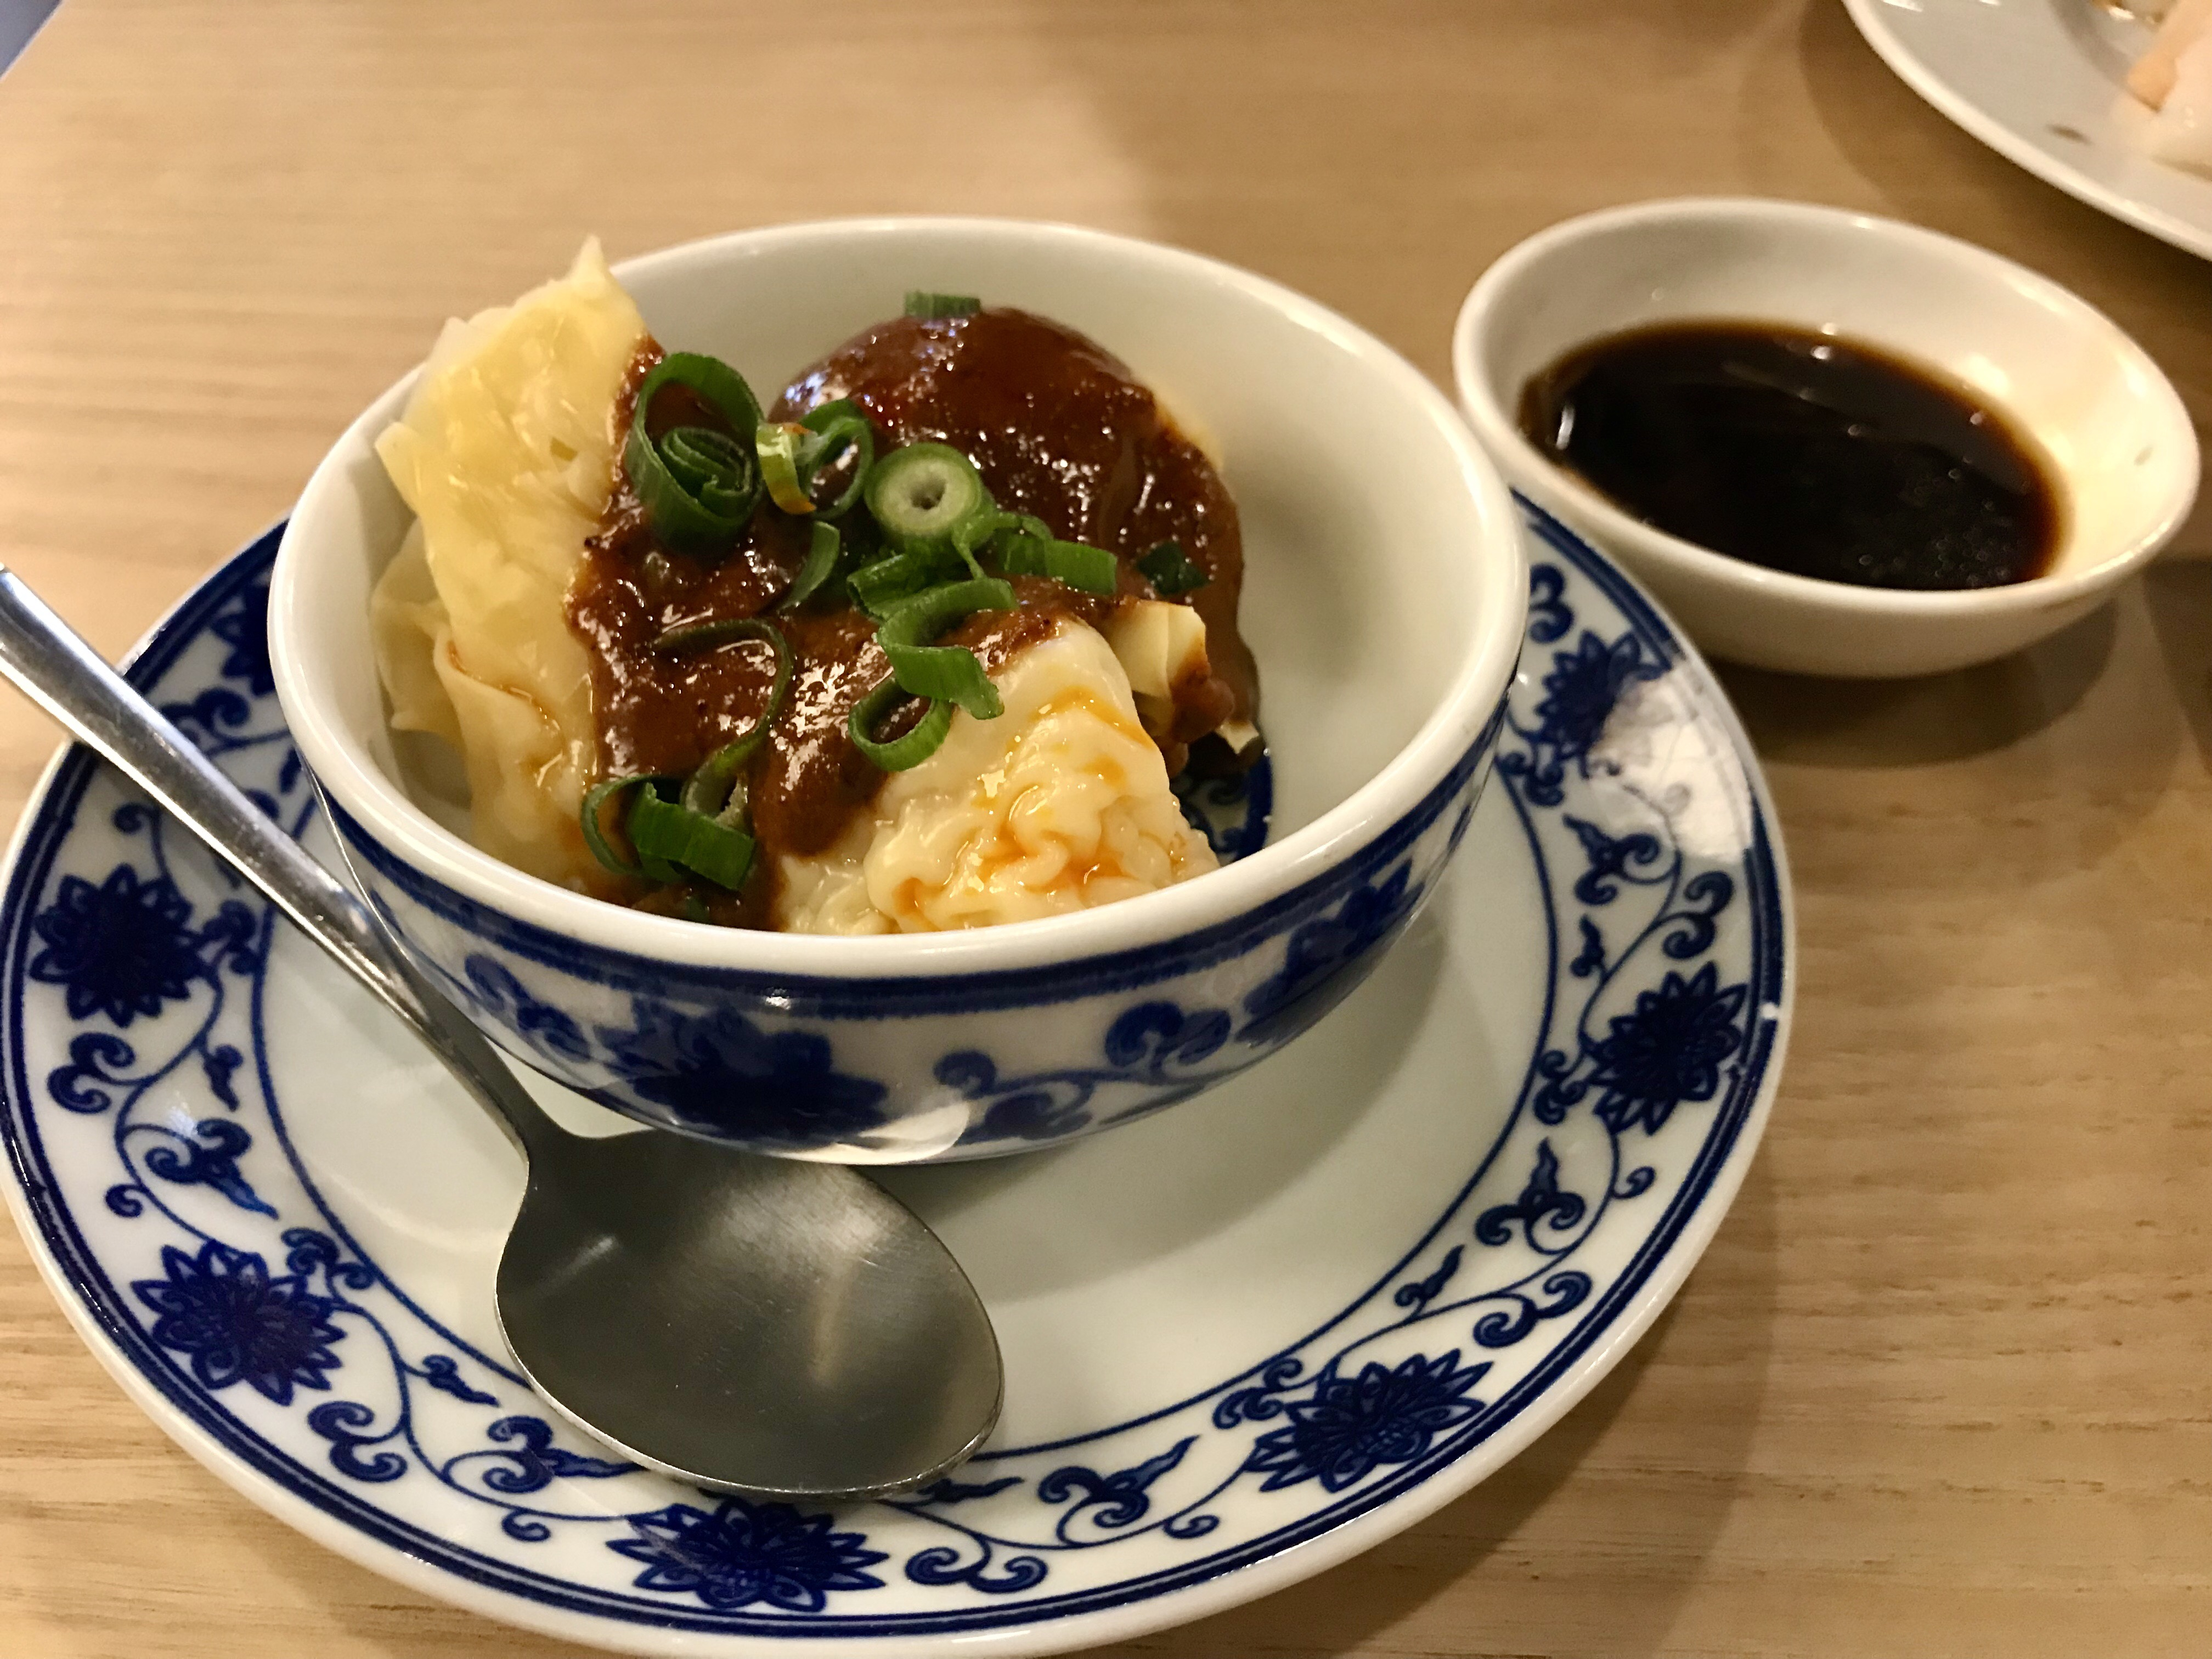 Q by Peter Chang Dim Sum pork-filled hot and numbing wonton